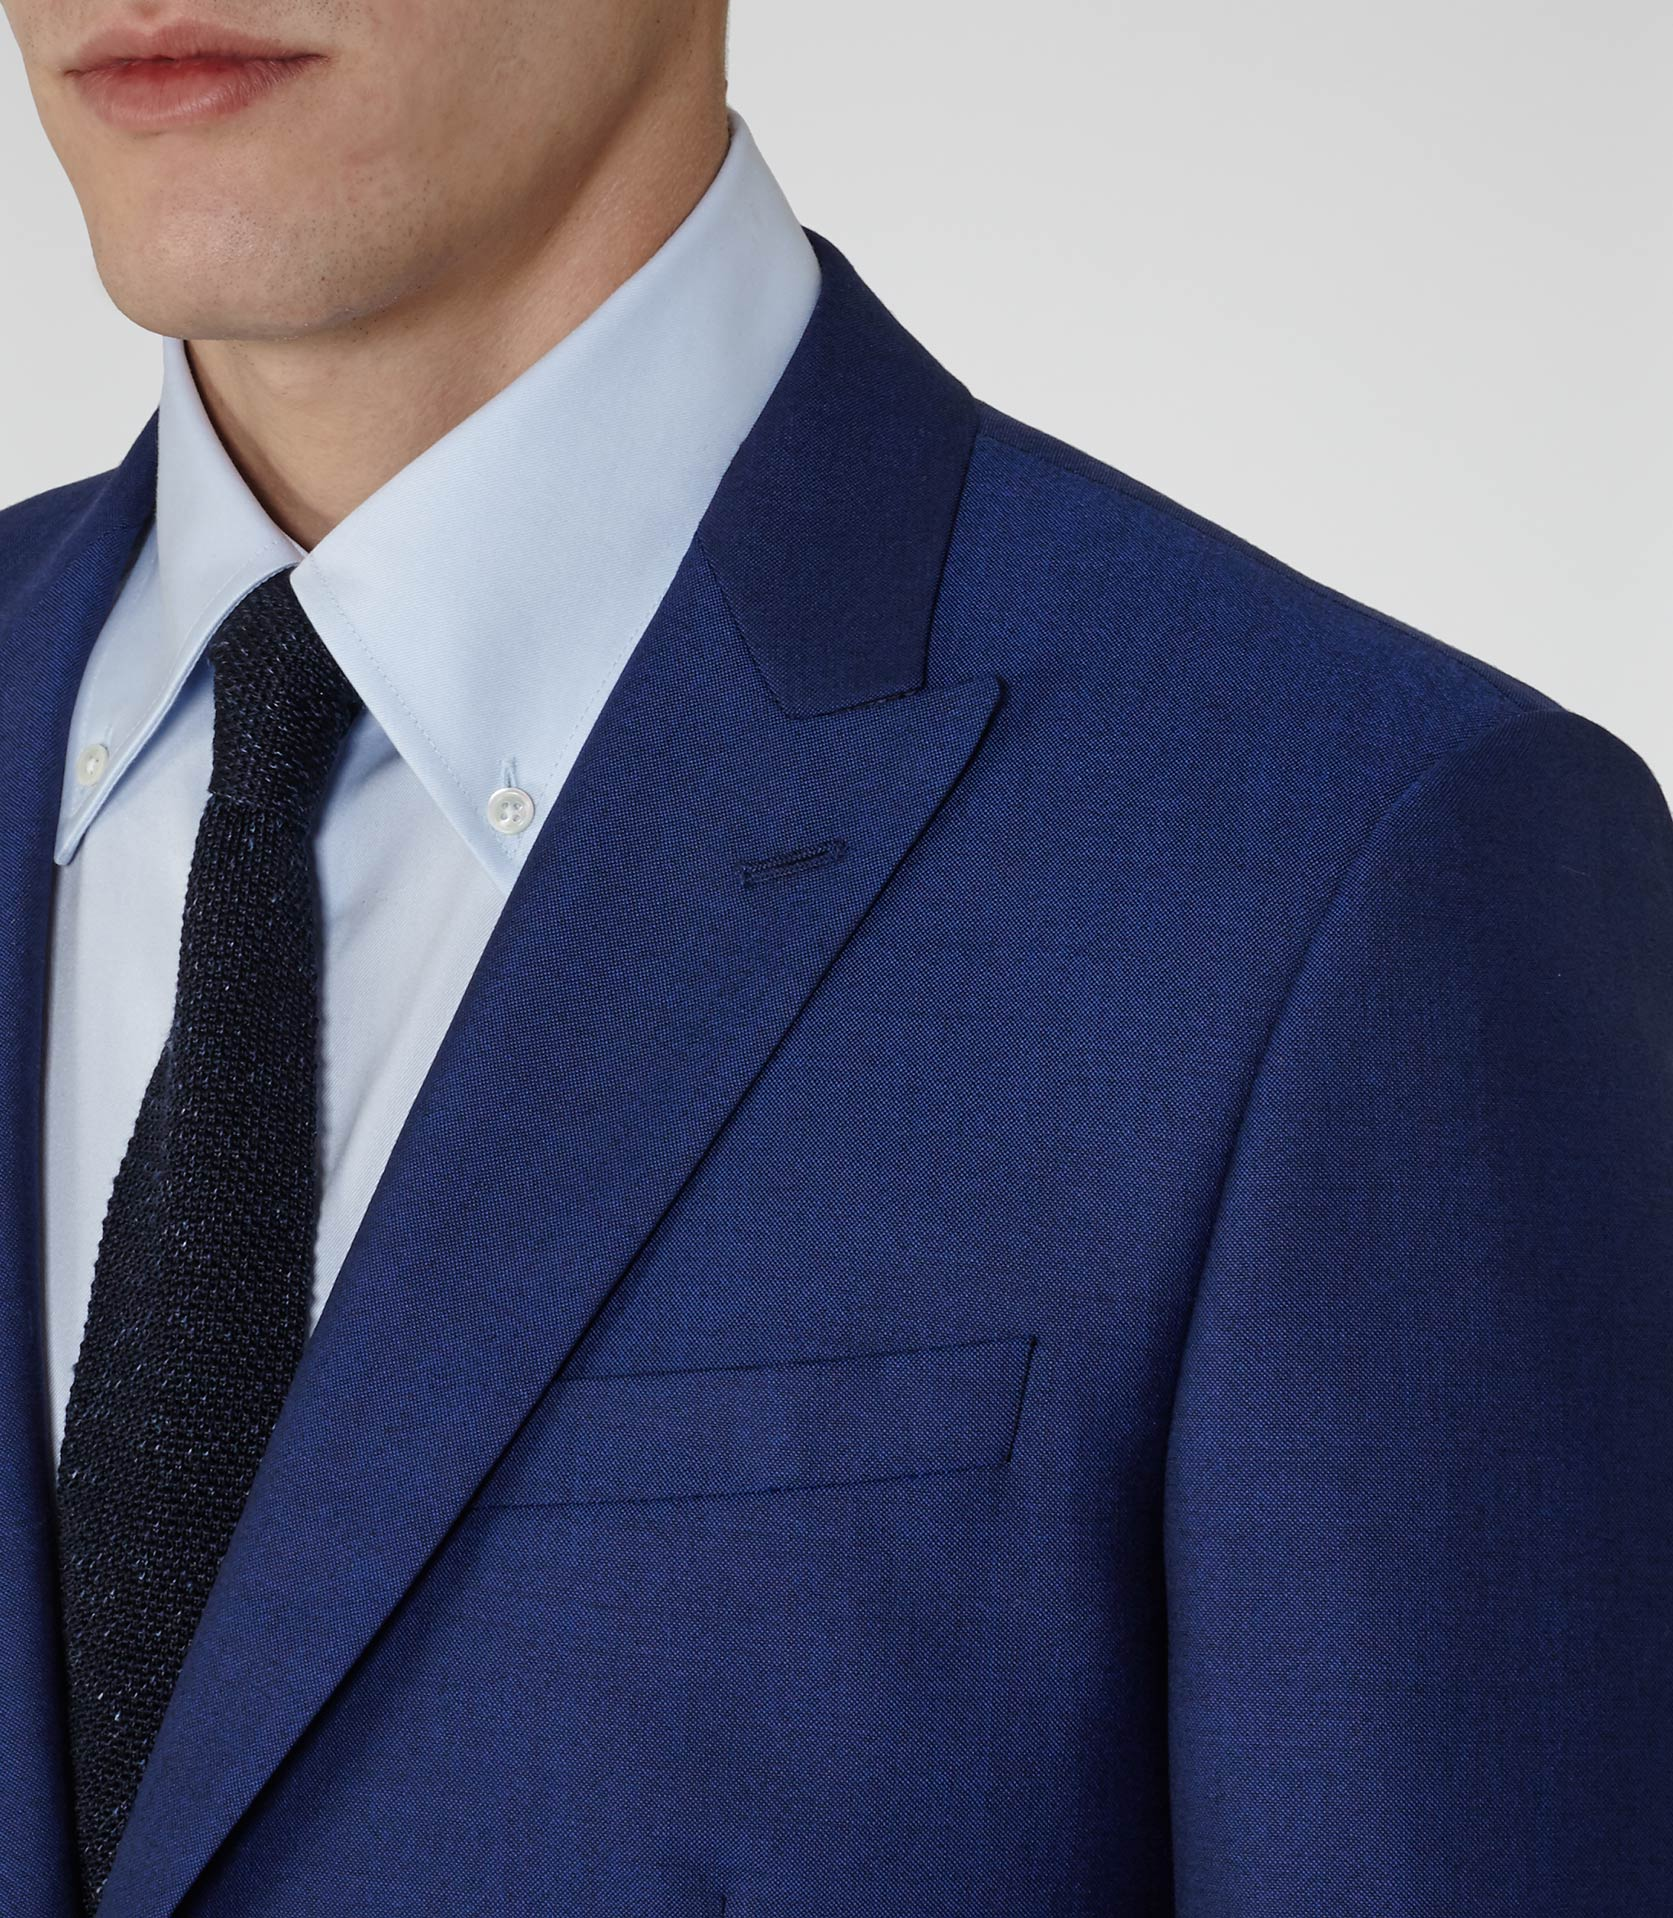 Peak Lapel – double breasted suit